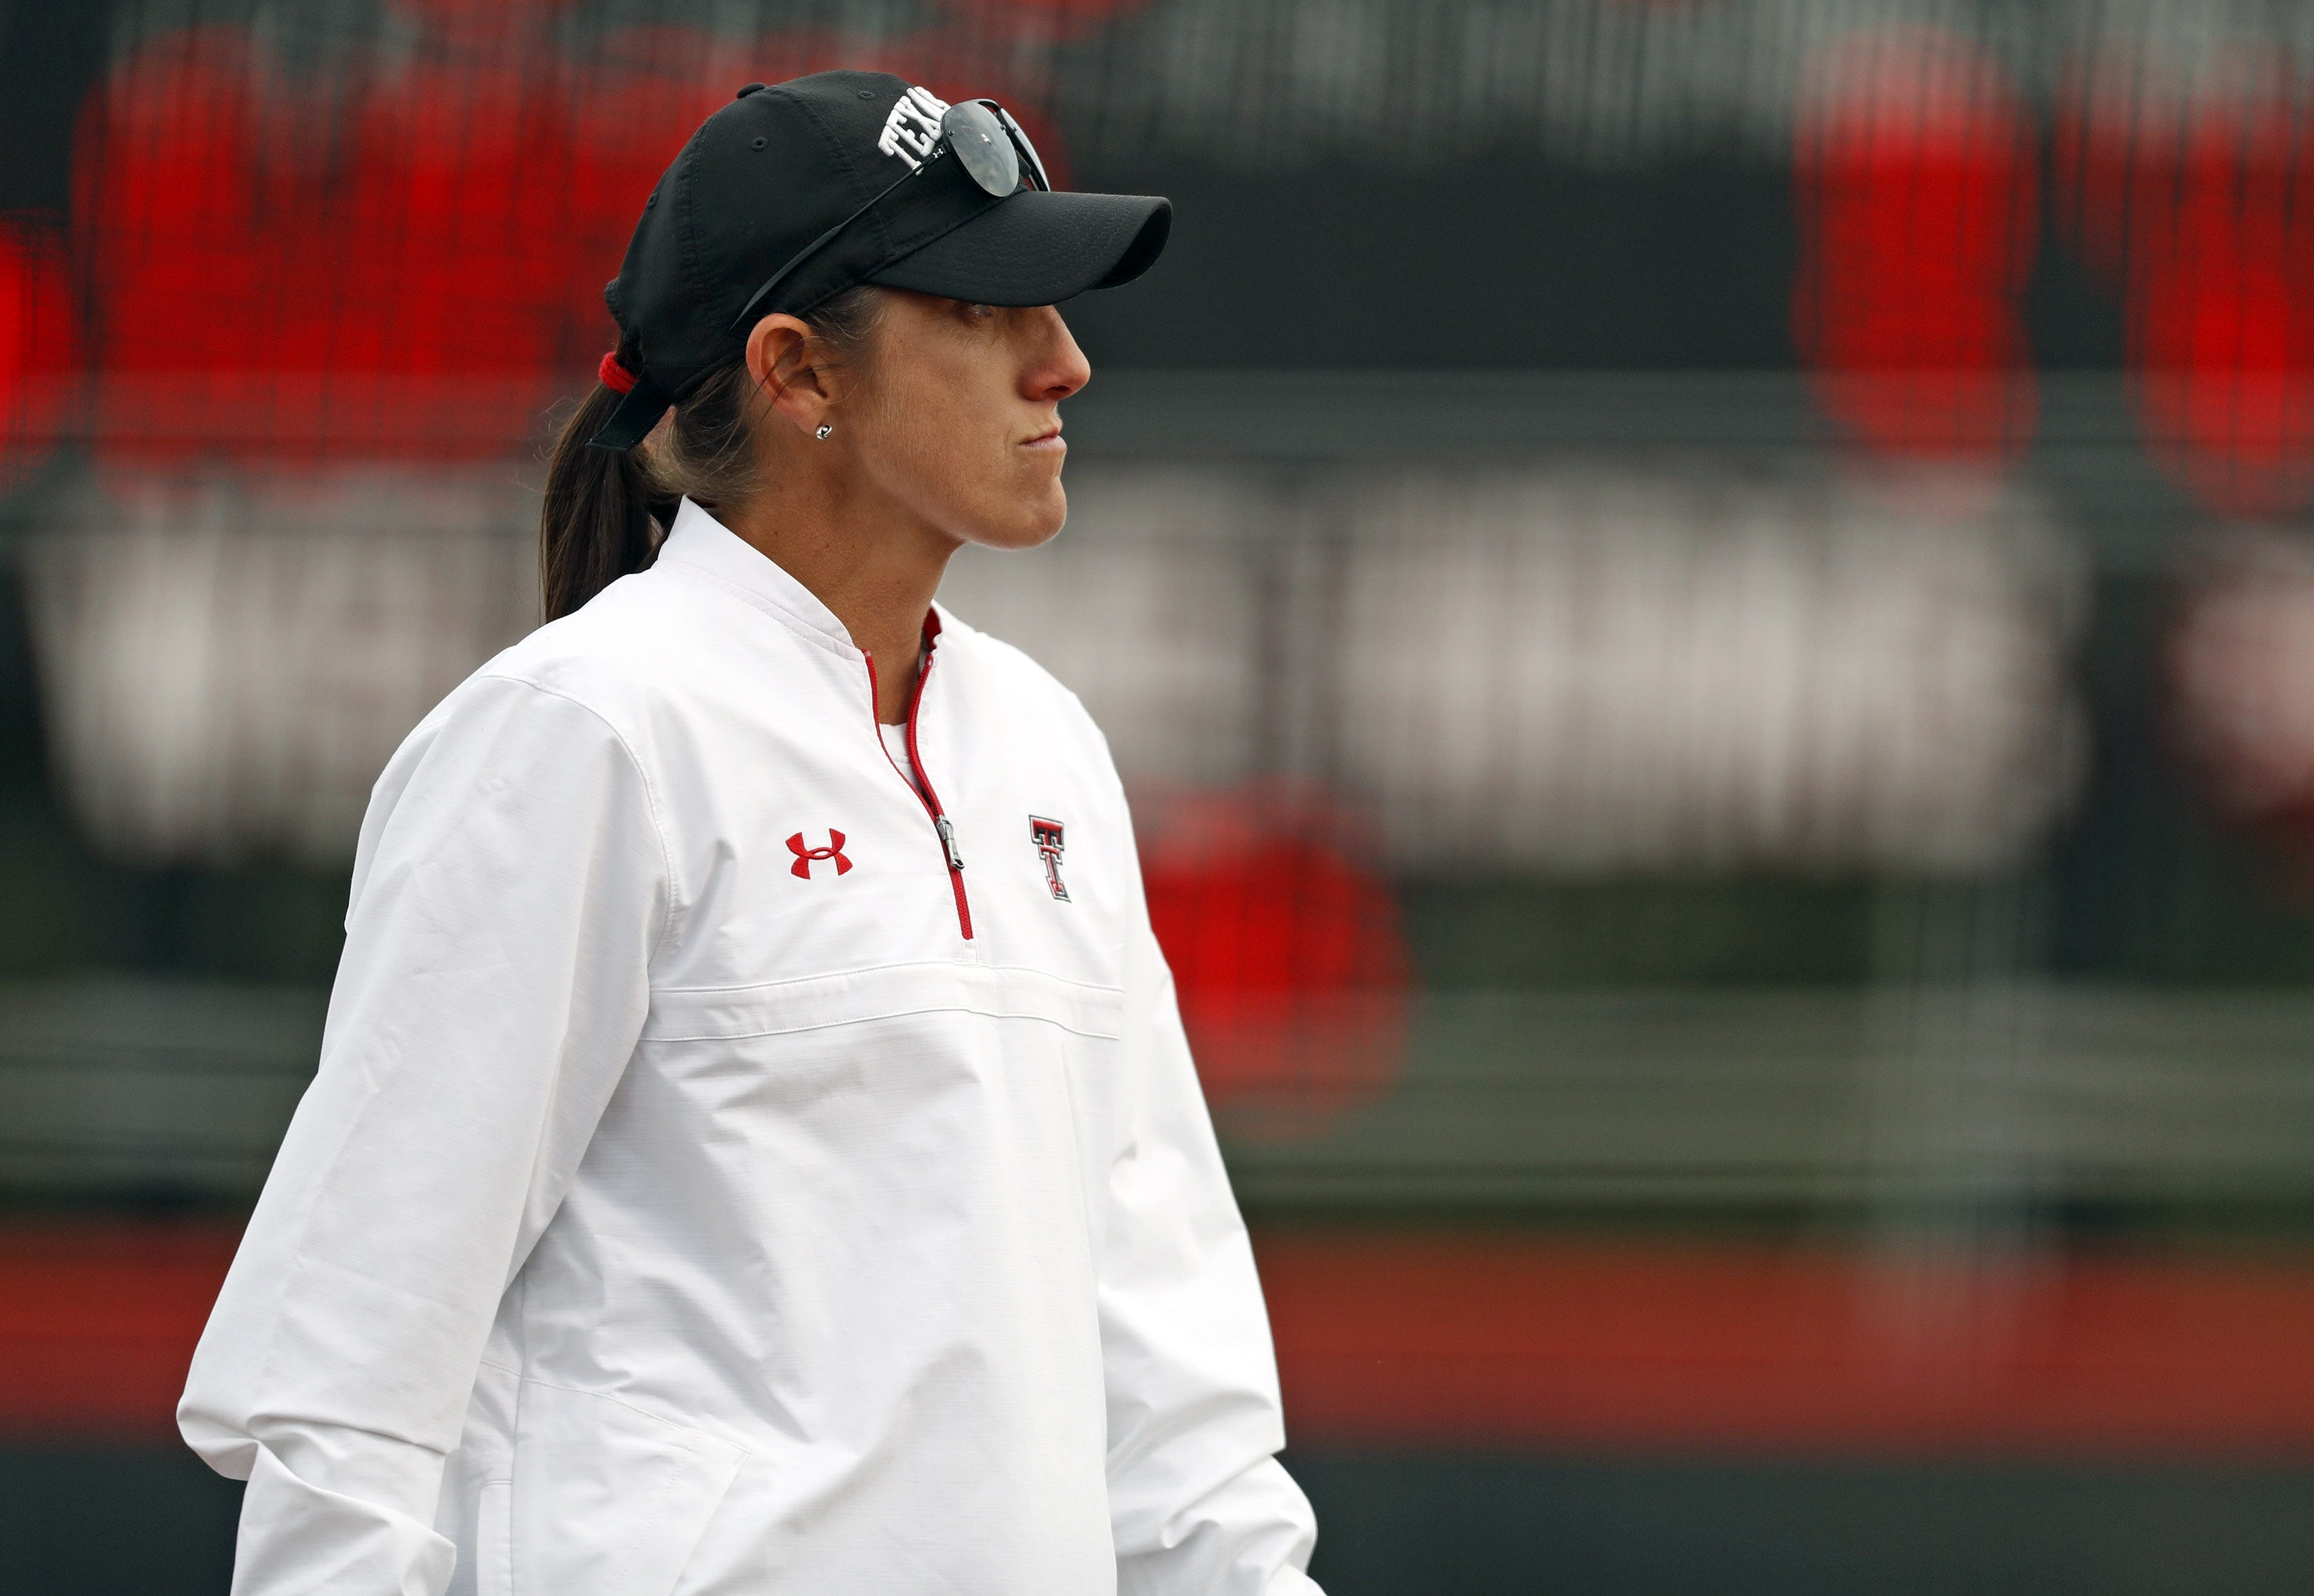 Texas Tech Red Raiders softball coach steps down after review of program